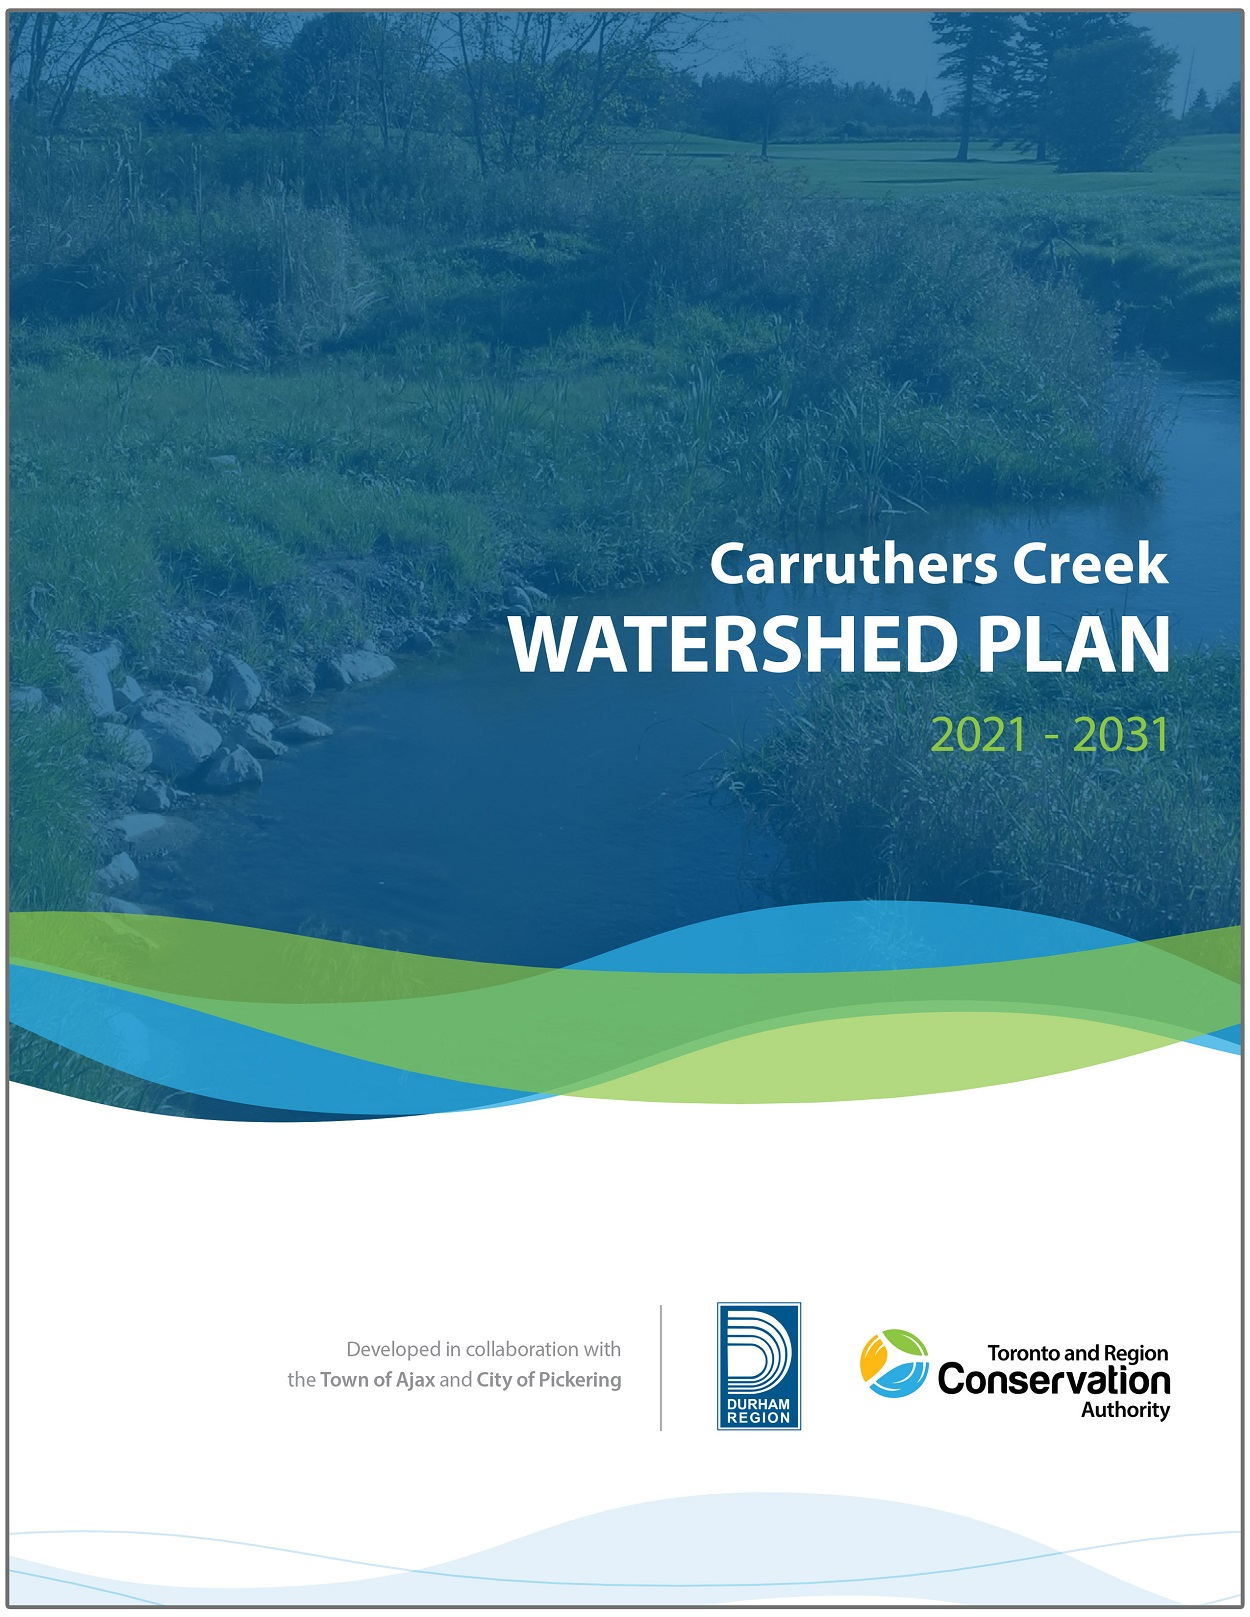 Updated Carruthers Creek Watershed Plan